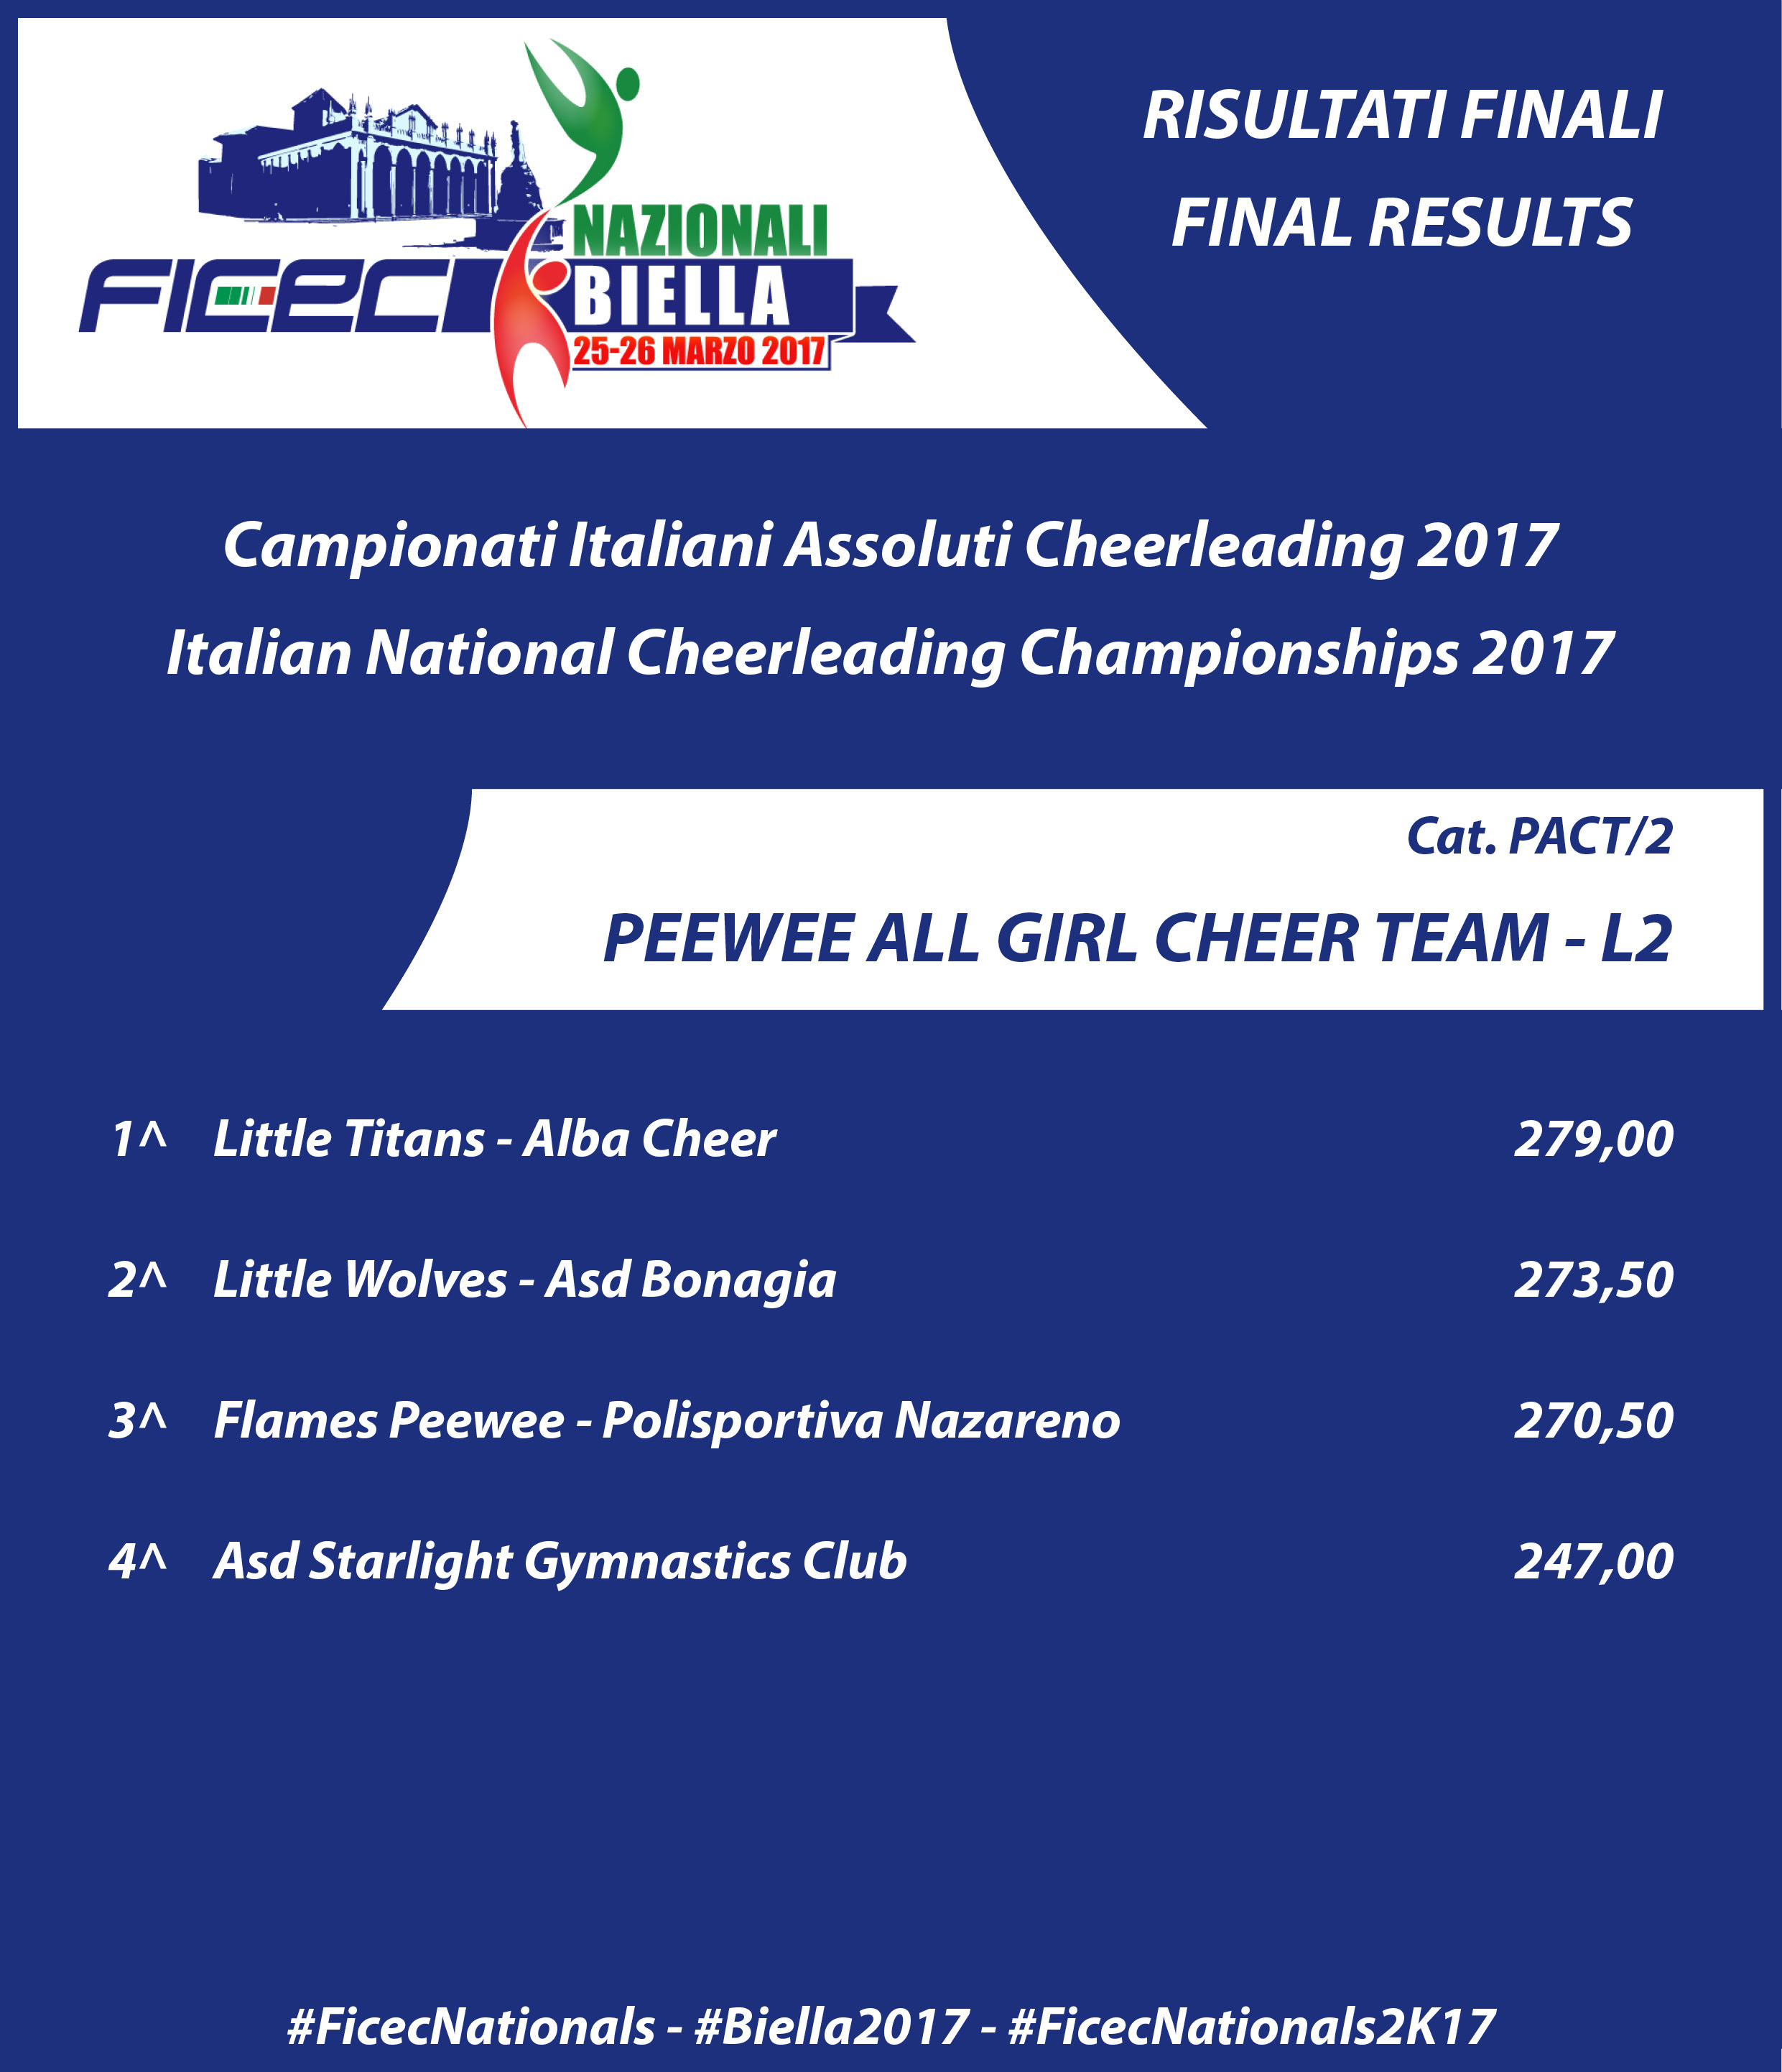 RESULTS nationals 2017 PACT 2